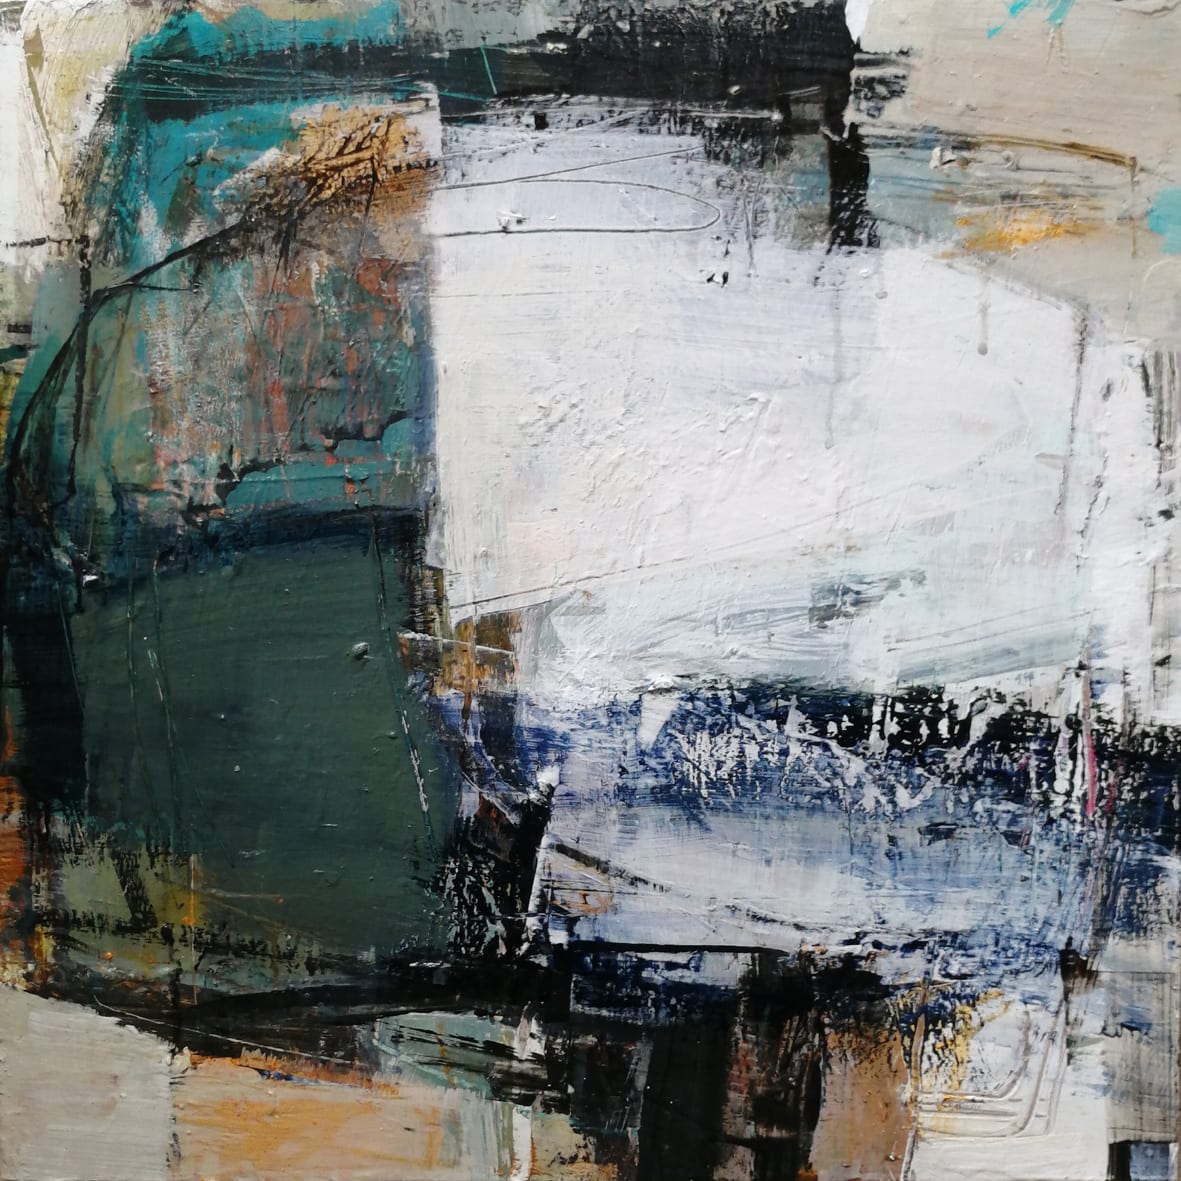 """<span class=""""link fancybox-details-link""""><a href=""""/store/artworks/7759-joanne-last-space-to-breathe-2021/"""">View Detail Page</a></span><div class=""""artist""""><strong>Joanne Last</strong></div> <div class=""""title""""><em>Space to Breathe</em>, 2021</div> <div class=""""signed_and_dated"""">signed and dated on verso</div> <div class=""""medium"""">acrylic on board</div> <div class=""""dimensions"""">board: 40 x 40 cm<br /> framed: 55 x 55 cm</div><div class=""""price"""">£950.00</div><div class=""""copyright_line"""">Own Art: £95 x 10 Months, 0% APR + £10 deposit</div>"""